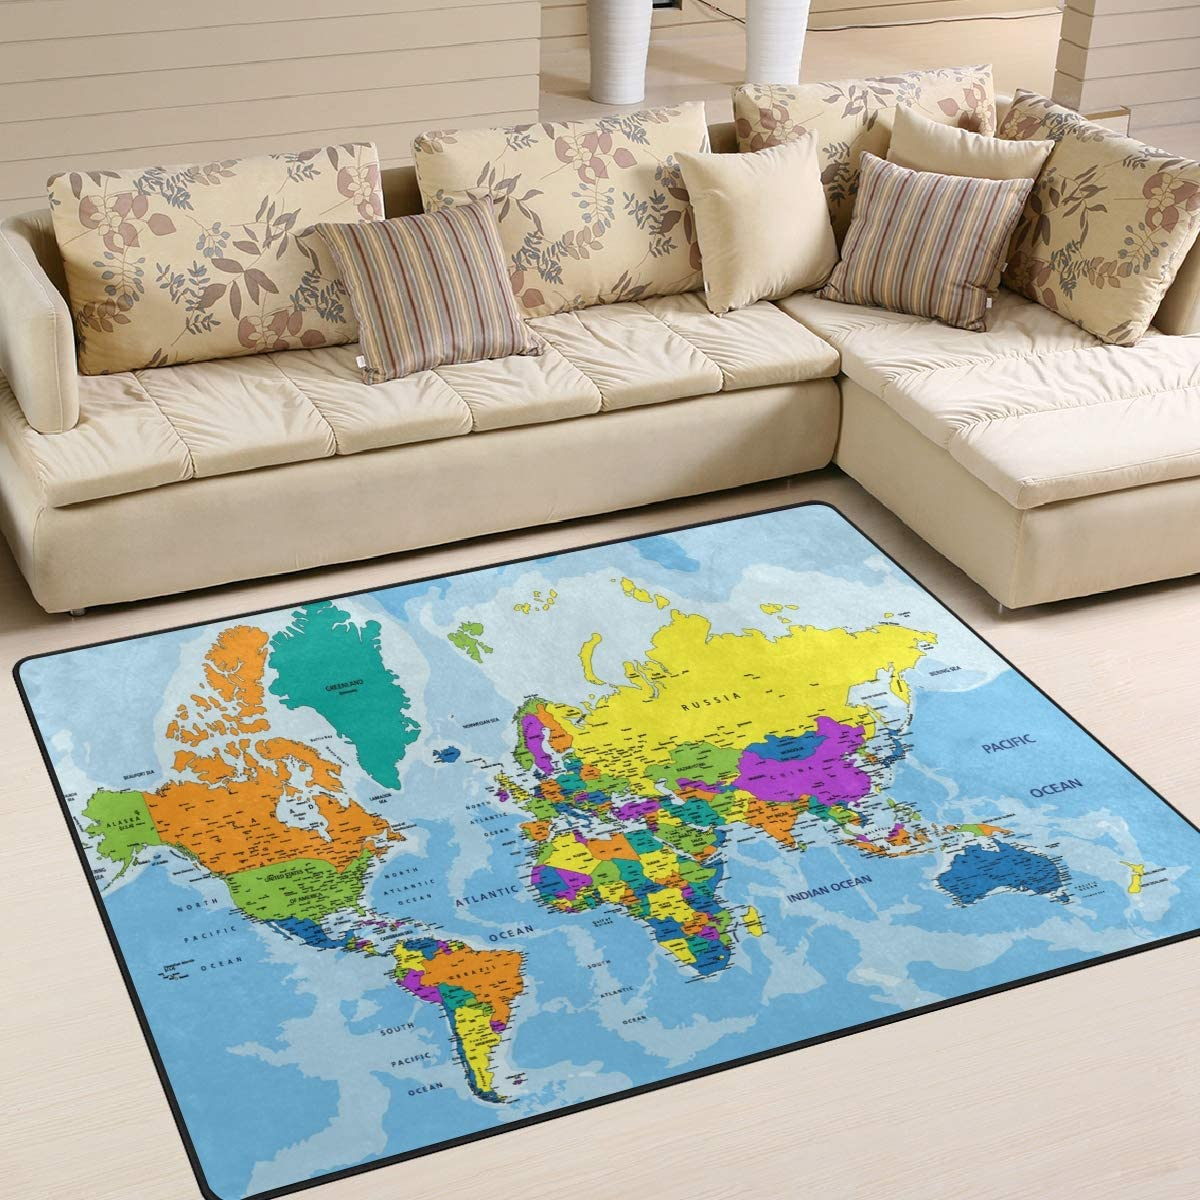 ALAZA Colorful World Map Area Rug Rugs for Living Room Bedroom 7 x 5